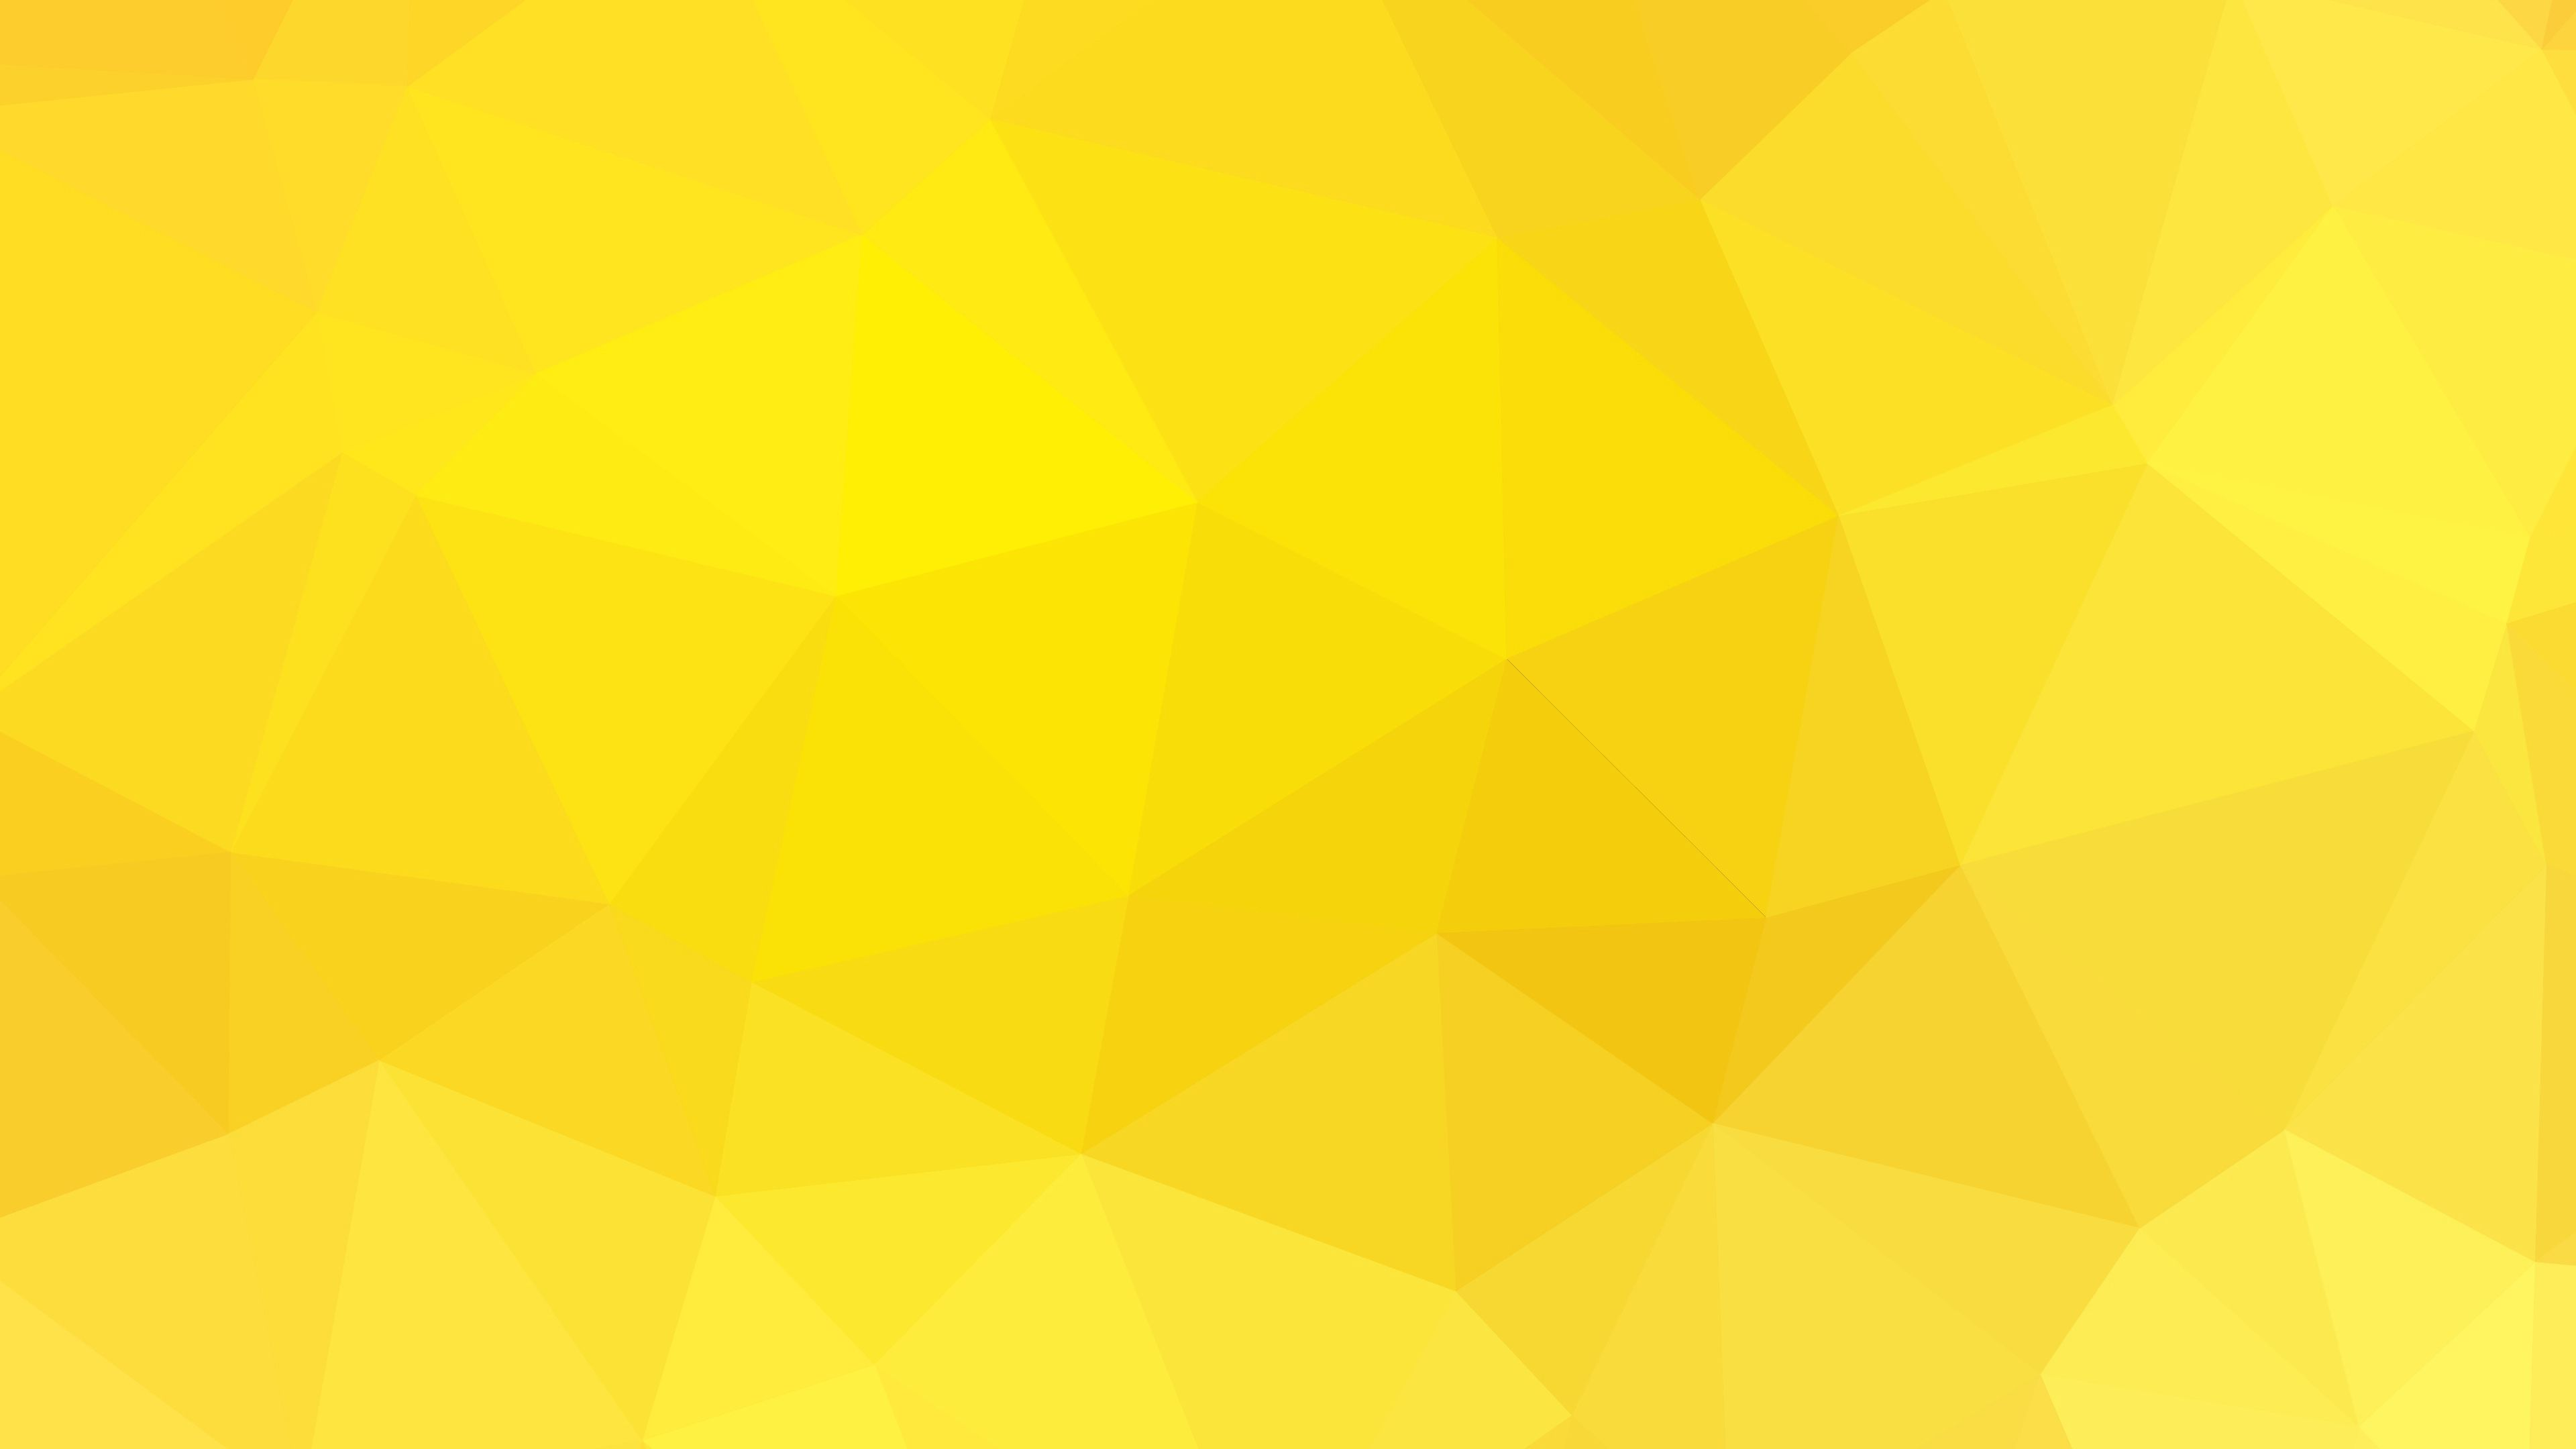 127689 download wallpaper Textures, Texture, Polygonal, Polygon, Triangles, Shades, Background, Geometric screensavers and pictures for free